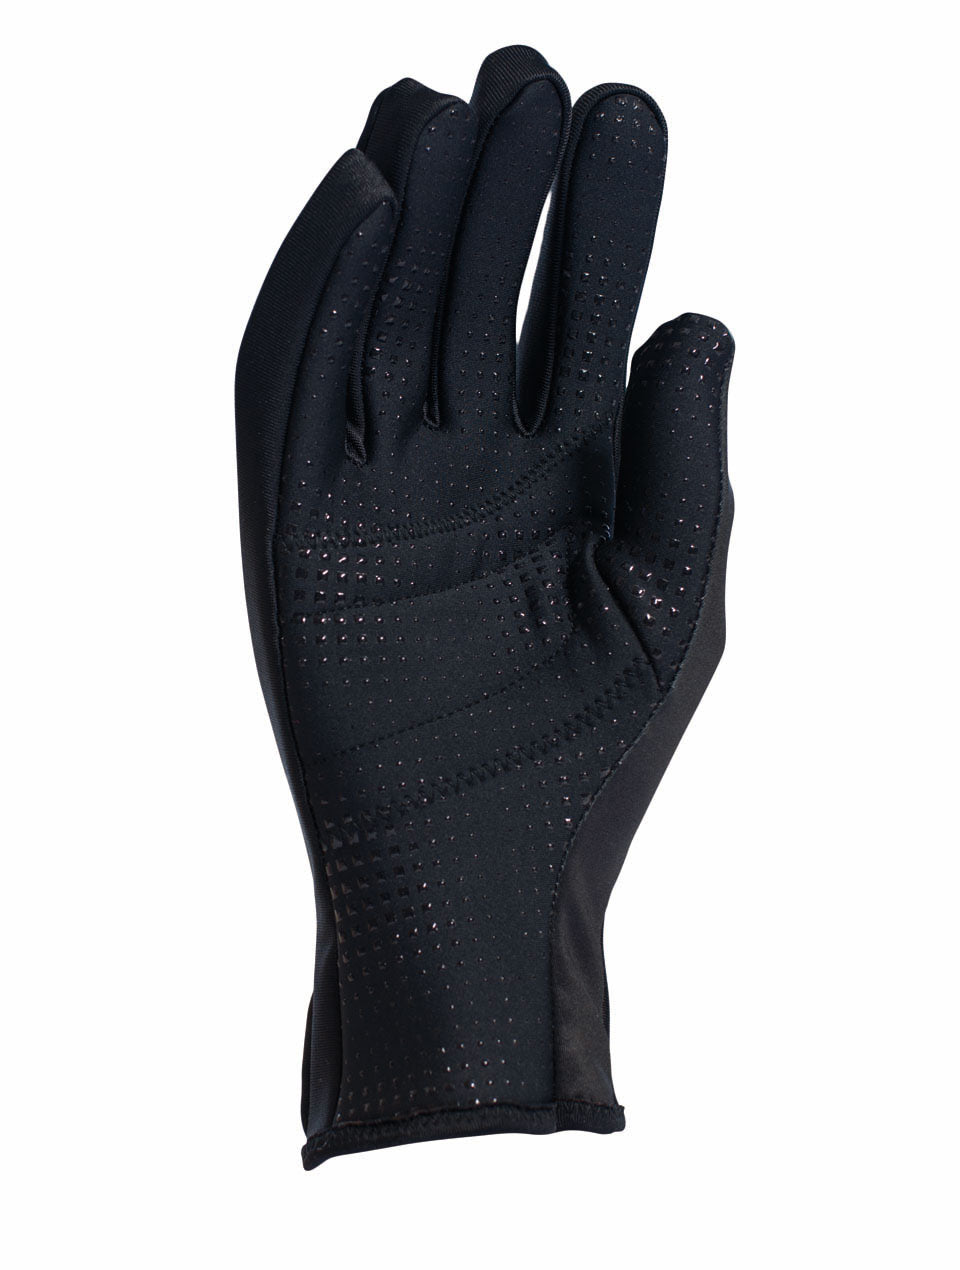 Winter Gloves - Double